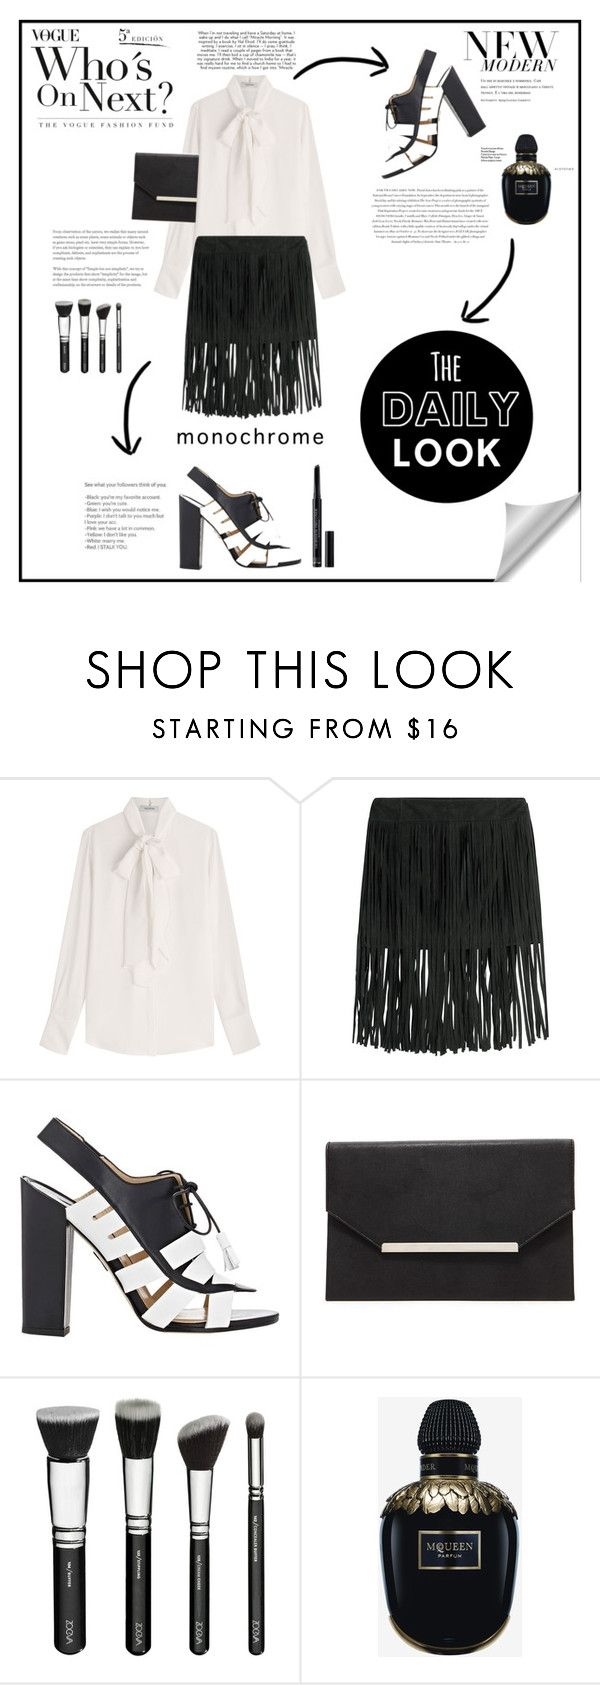 """""""Word."""" by zeljkaa ❤ liked on Polyvore featuring Valentino, McQ by Alexander McQueen, Paul Andrew, Forever 21, Envi, Alexander McQueen and Christian Dior"""